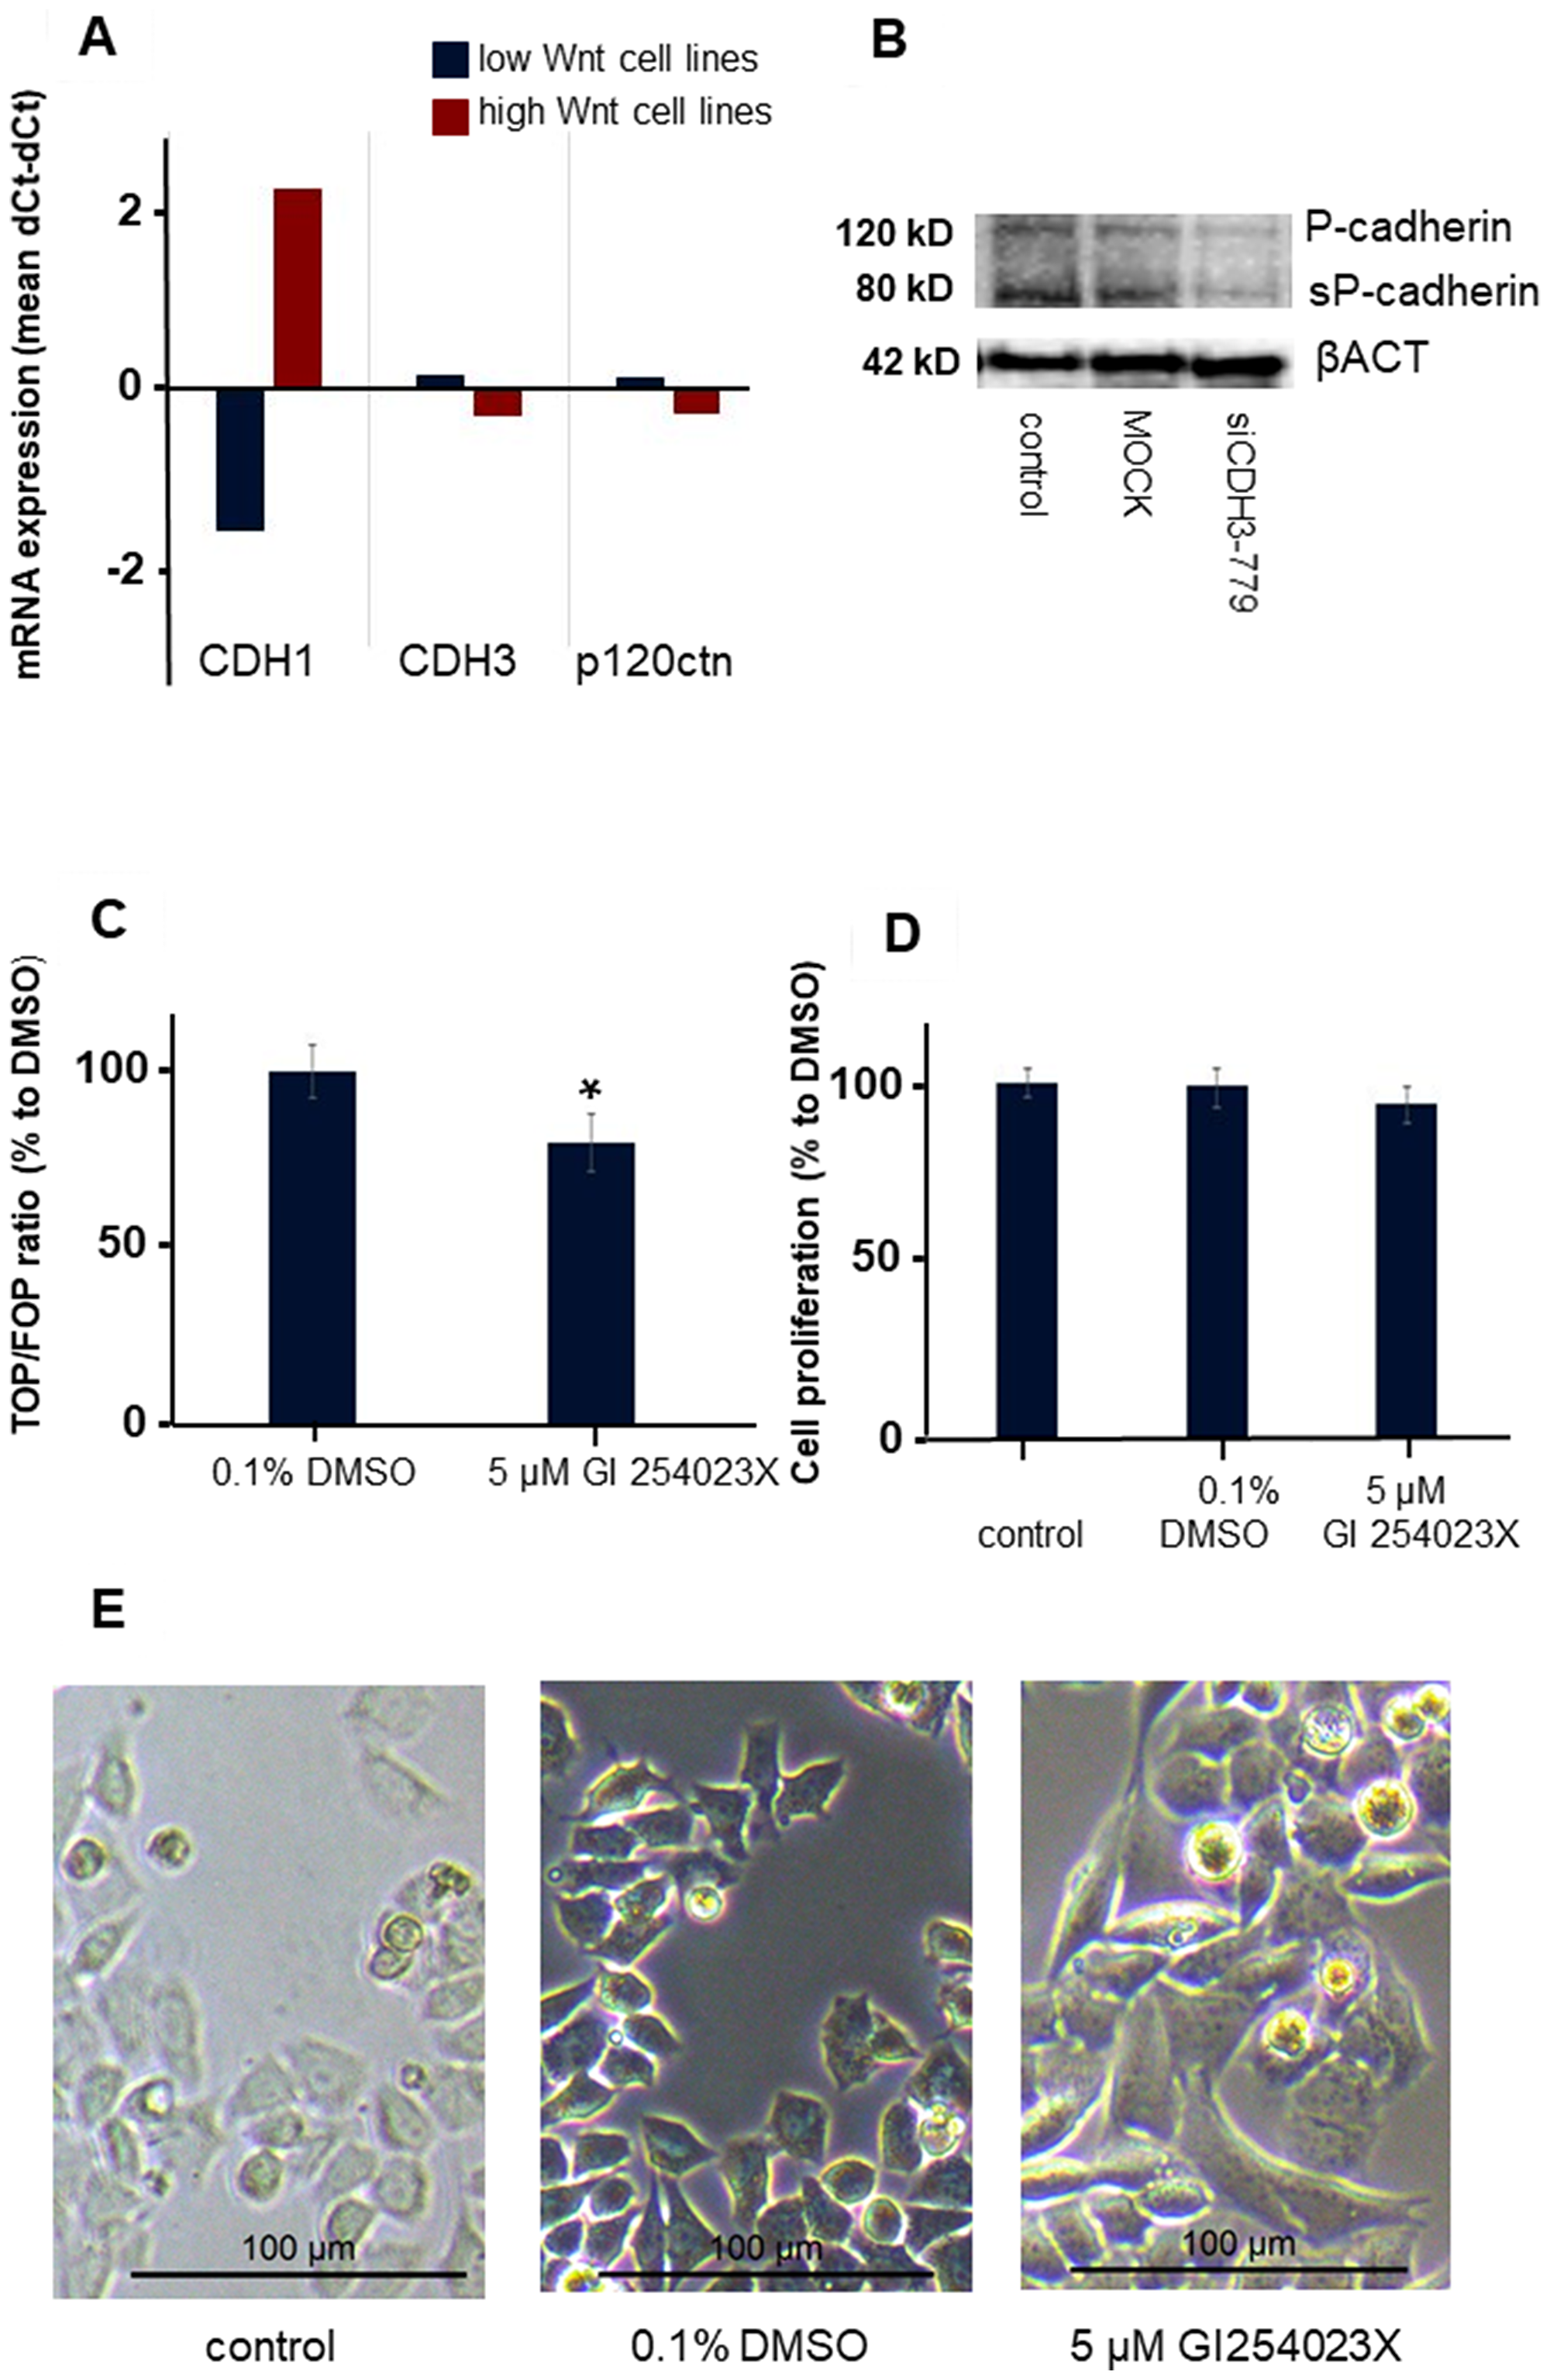 The effect of ADAM10 inhibitor GI 254023X in the CMT-U27 canine mammary tumor cell line.